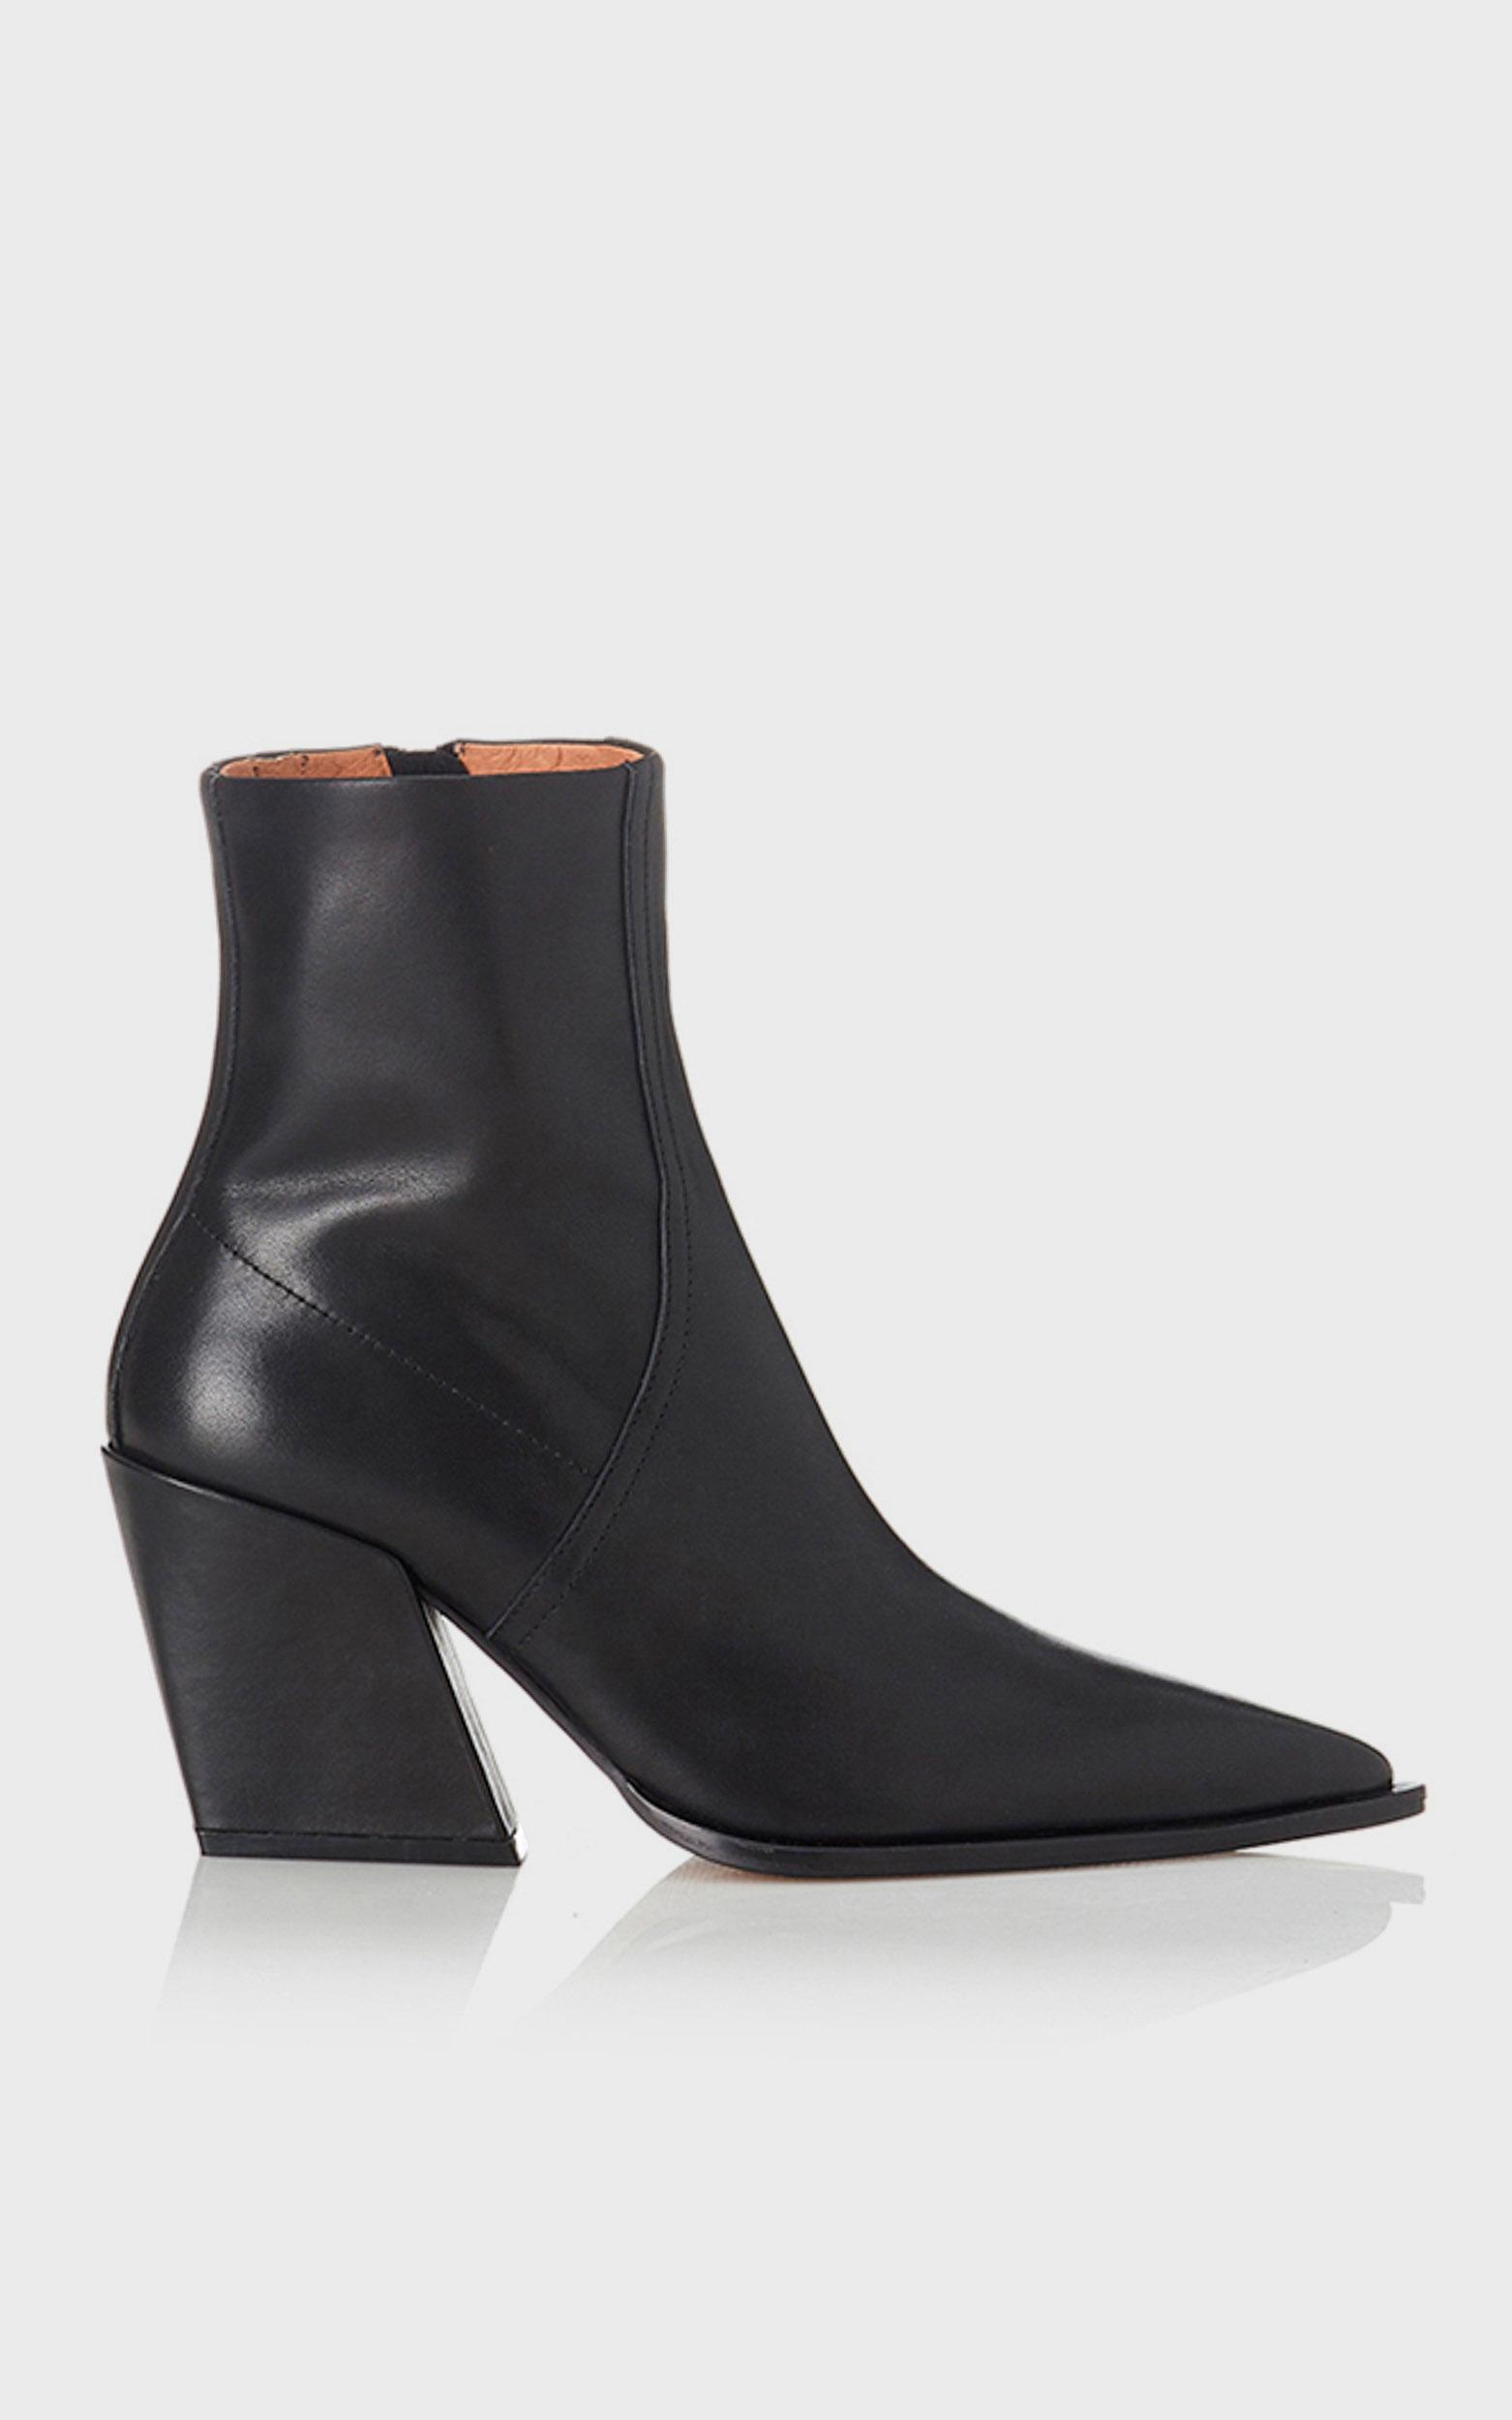 Alias Mae - Knight Boots in Black Burnished - 5.5, BLK1, hi-res image number null